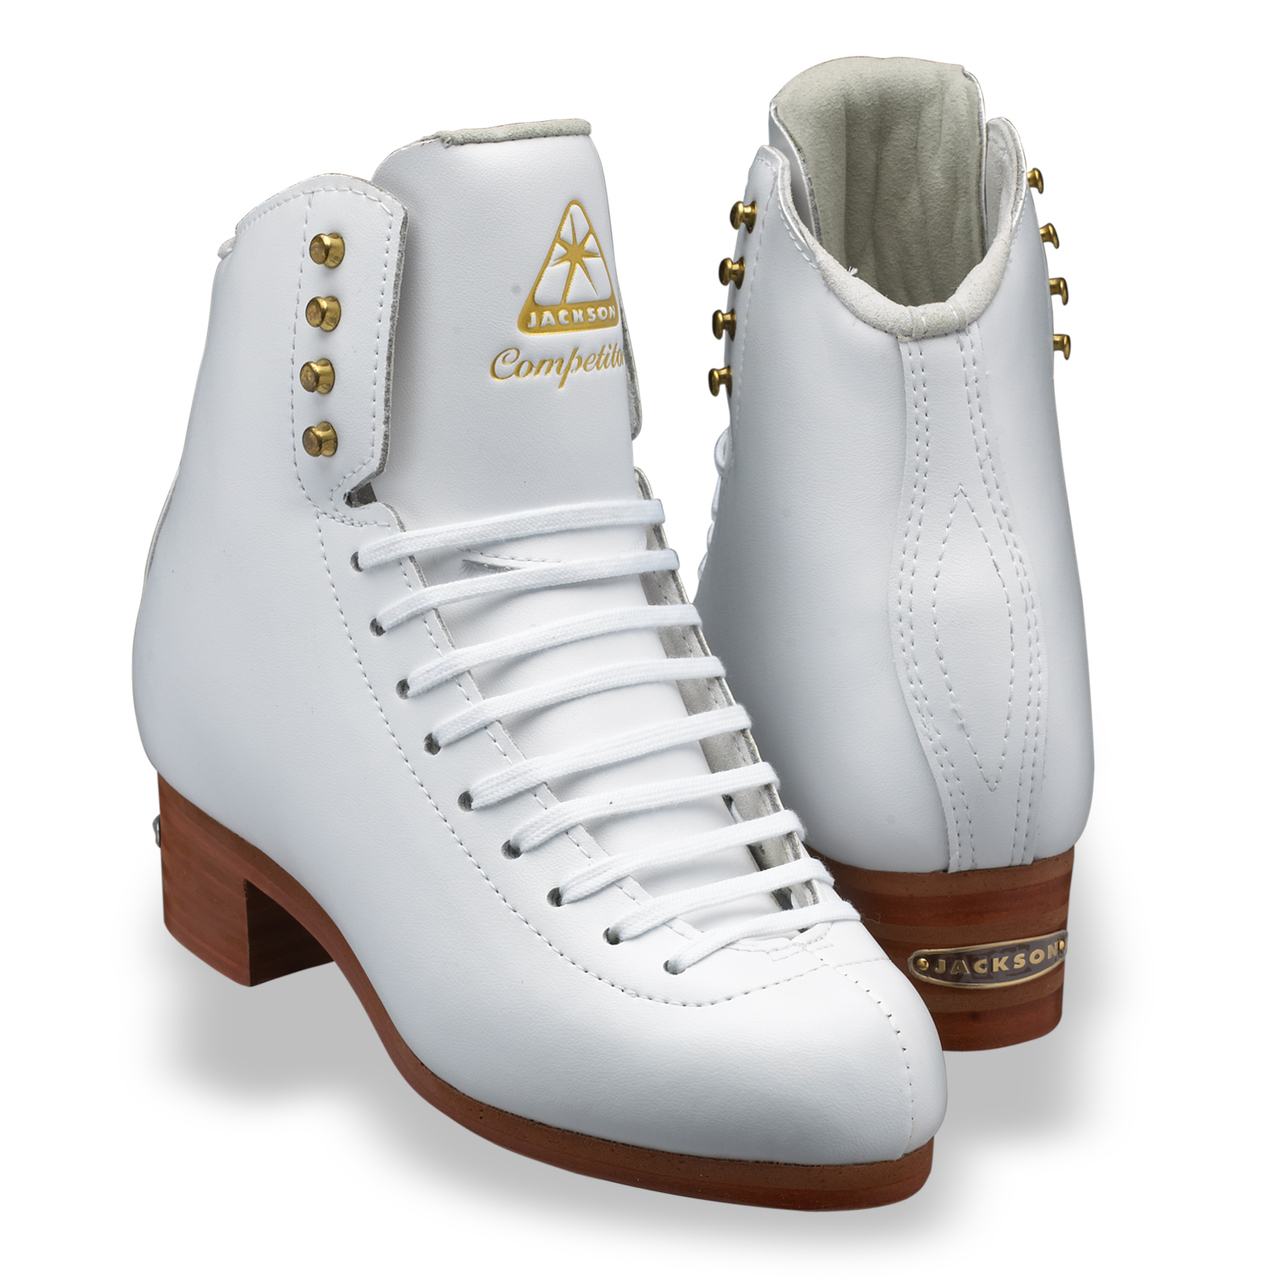 Figure Skates Jackson Competitor DJ2401 Misses Boot by